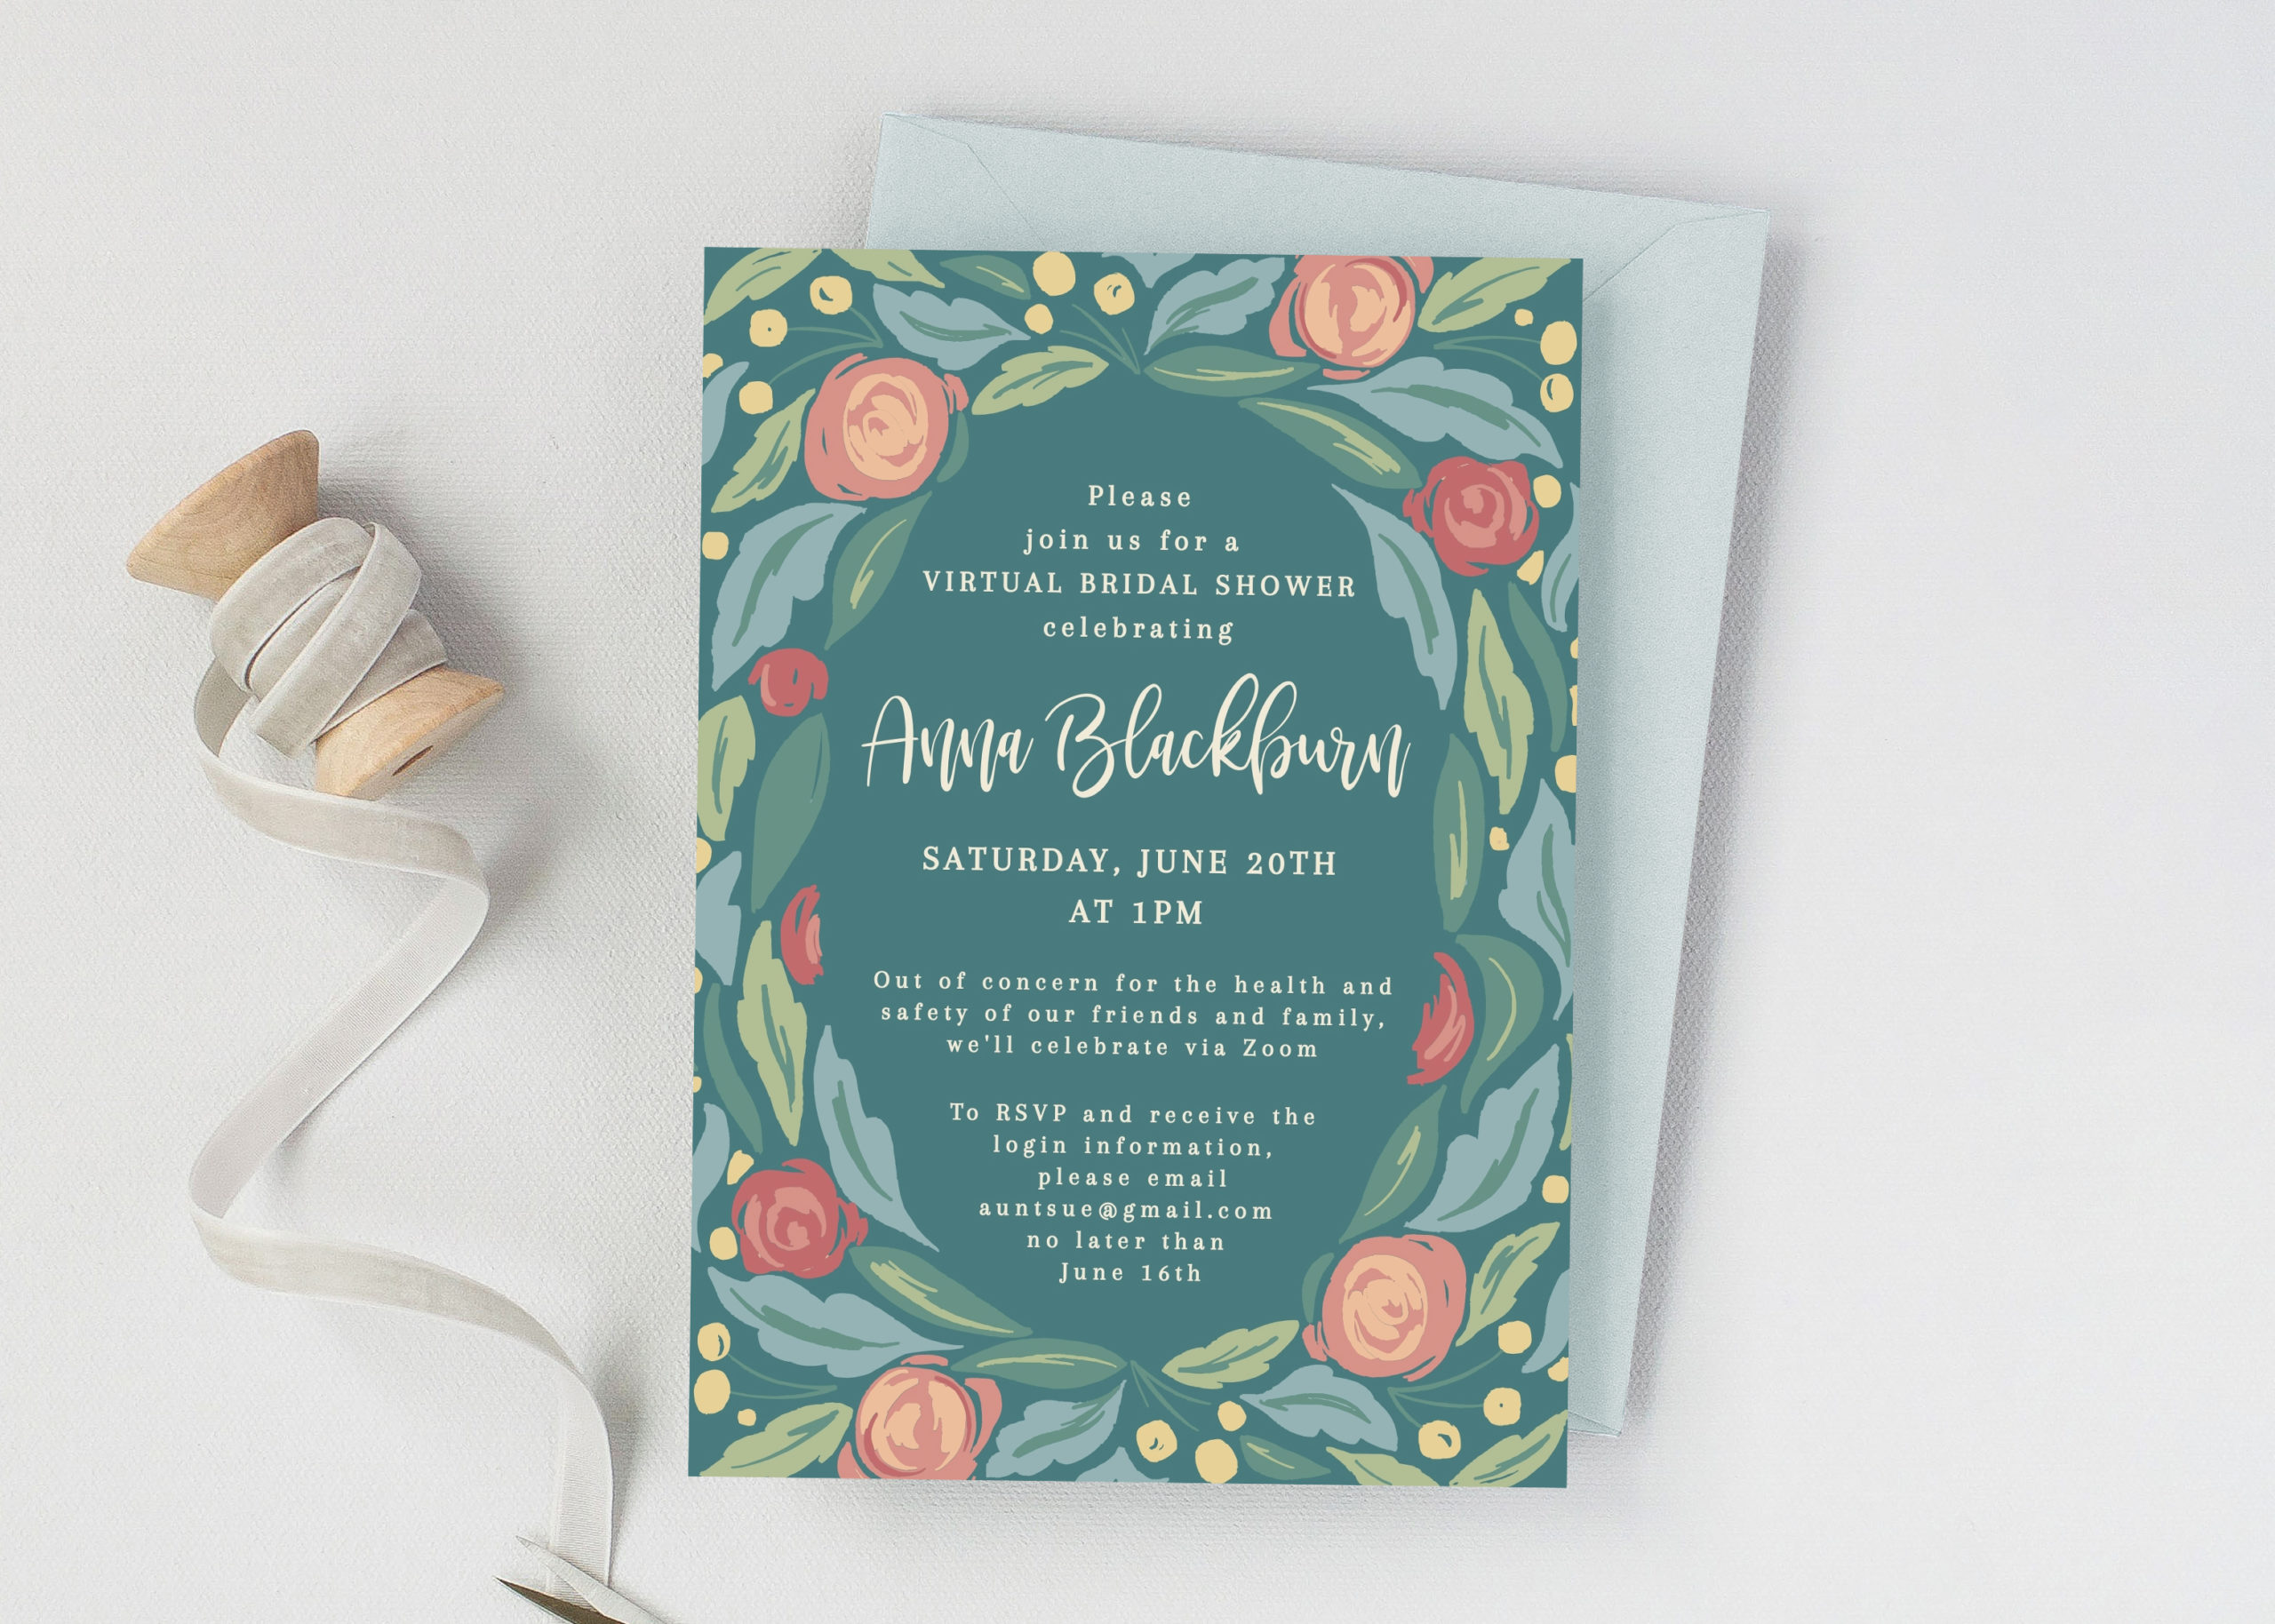 Virtual Bridal Shower Invitation